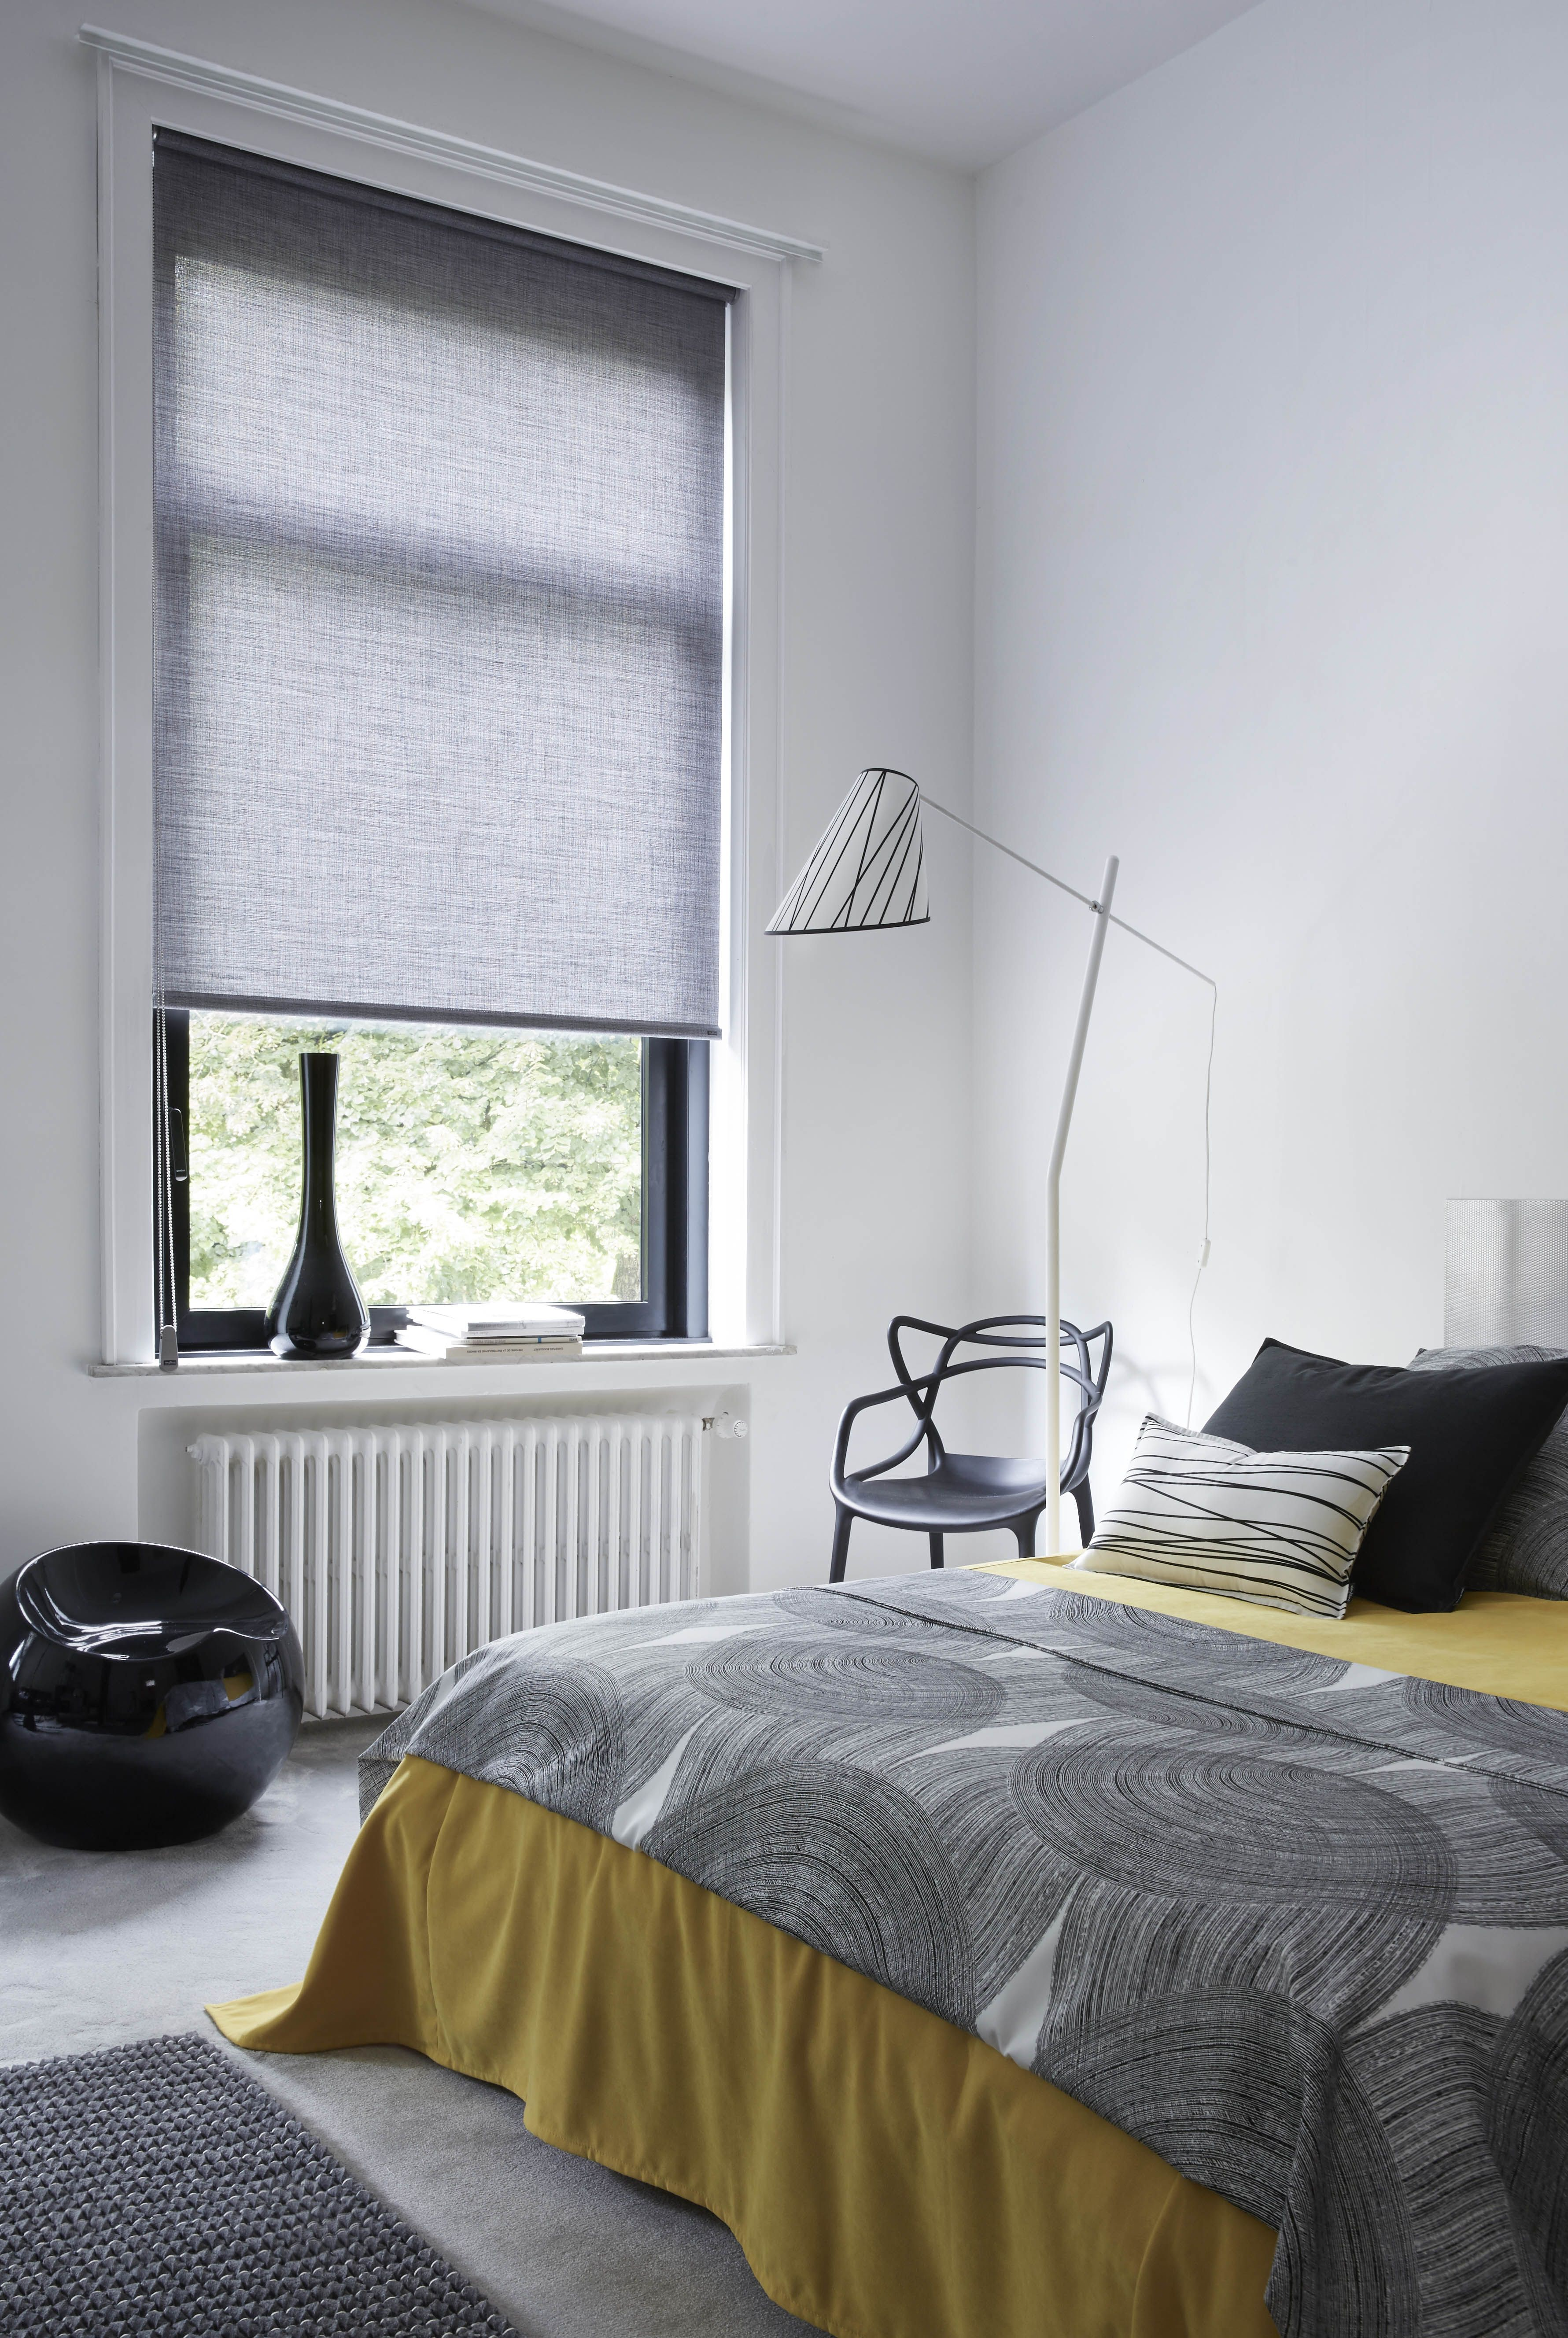 chez vous store enrouleur gris chin et abat jour. Black Bedroom Furniture Sets. Home Design Ideas